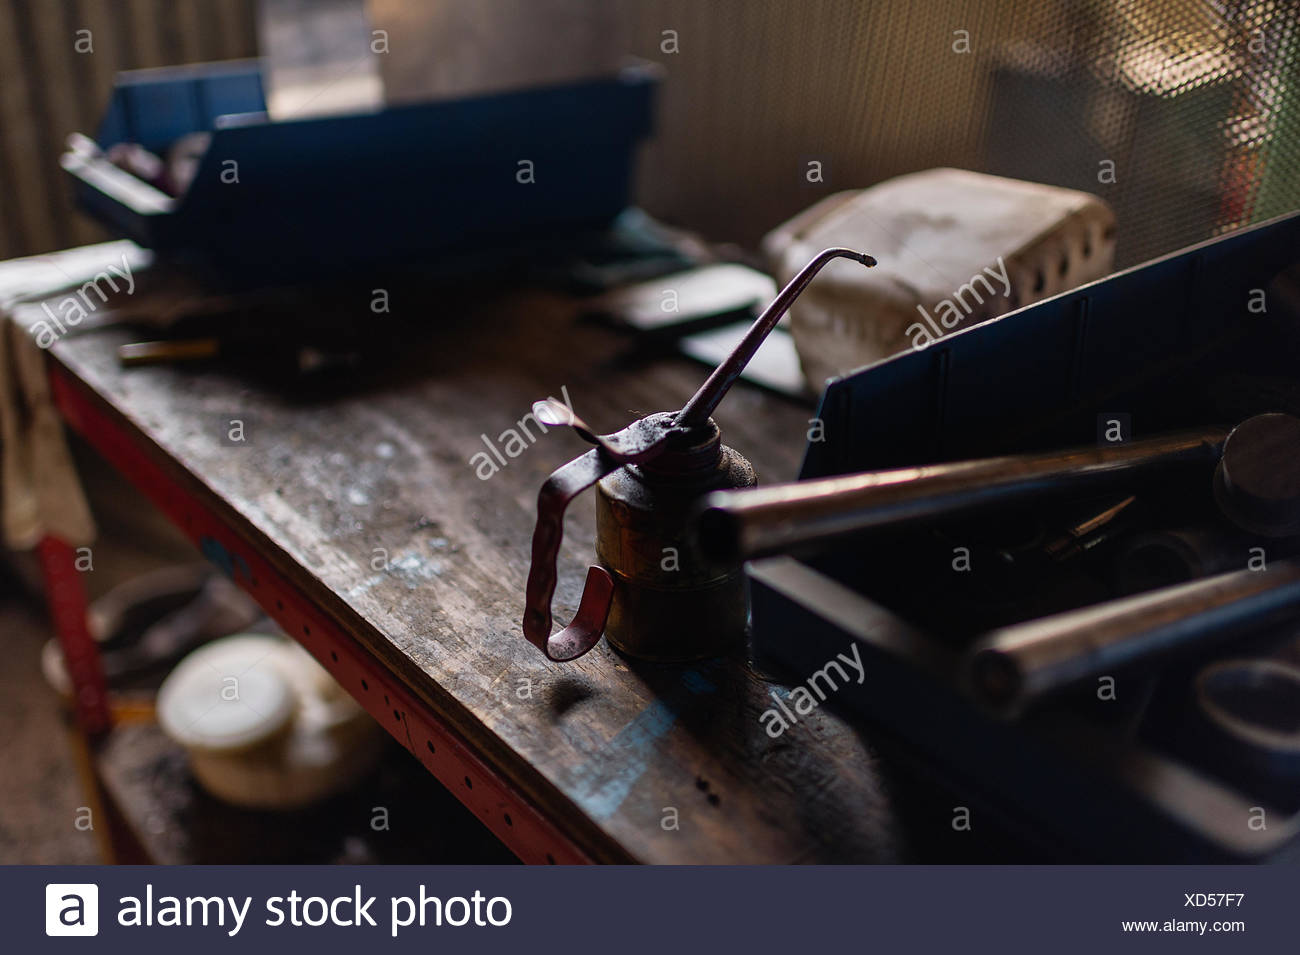 Sweden, Work tools on table - Stock Image